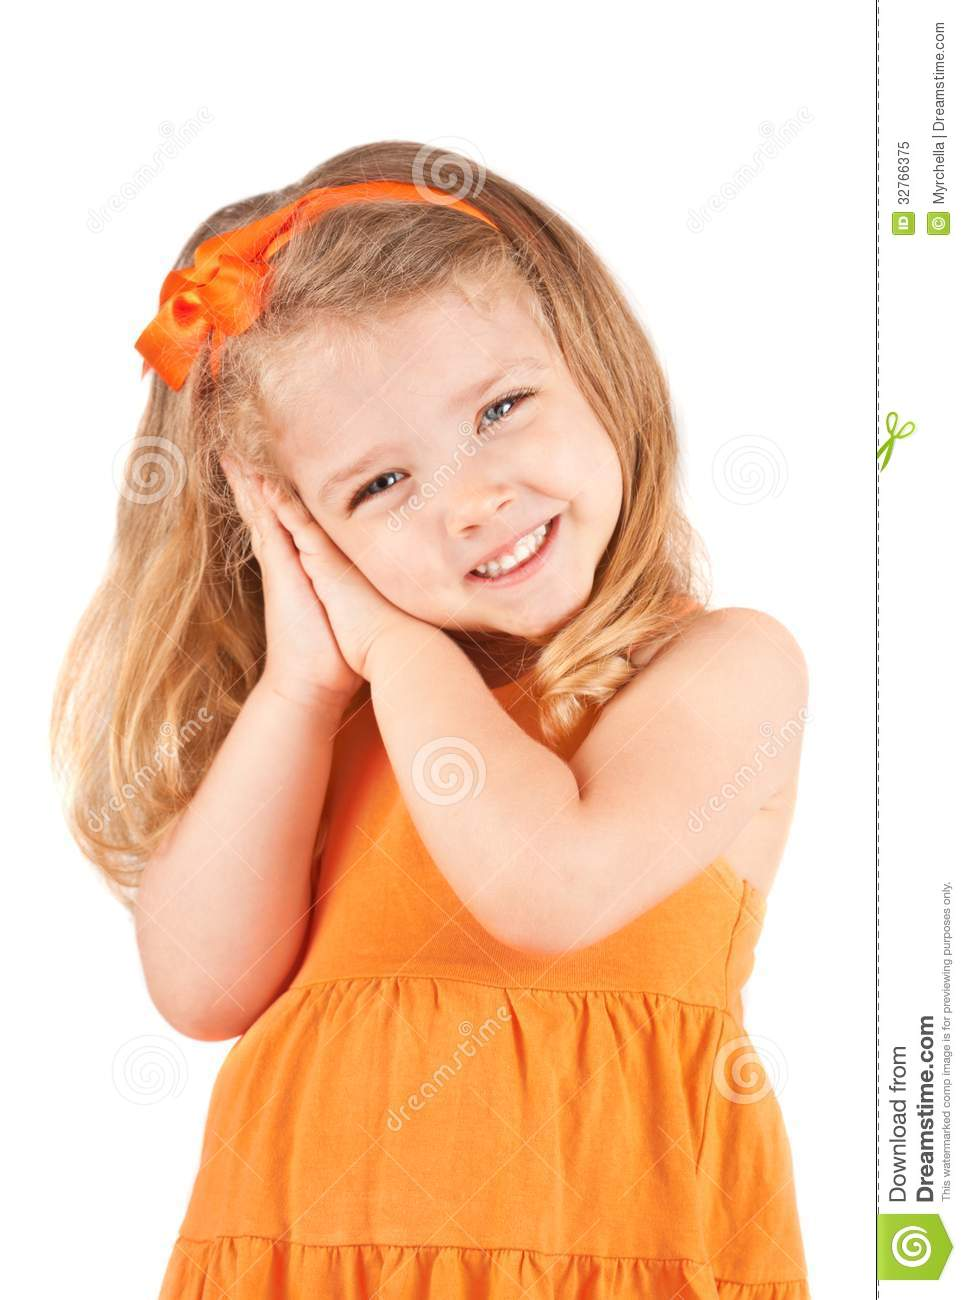 Cute Little Girl Smiling Royalty Free Stock Photo - Image: 32766375